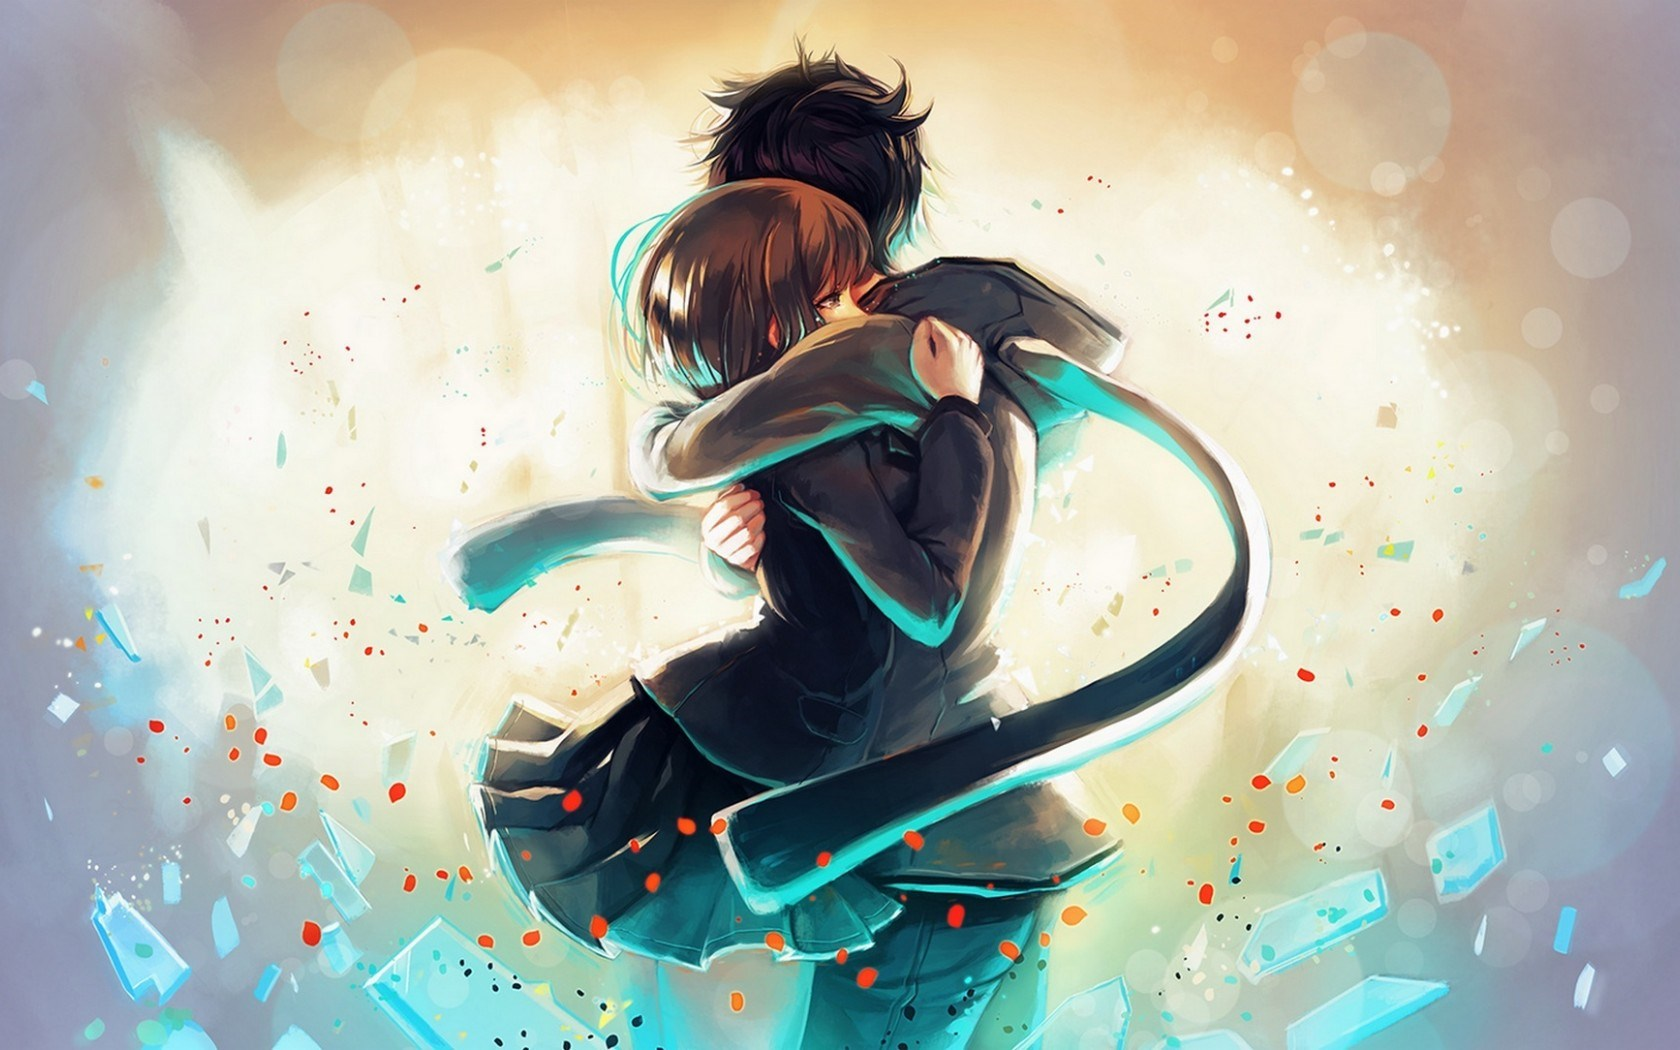 Anime Love Hug Hd Wallpapers And Pictures 1680x1050